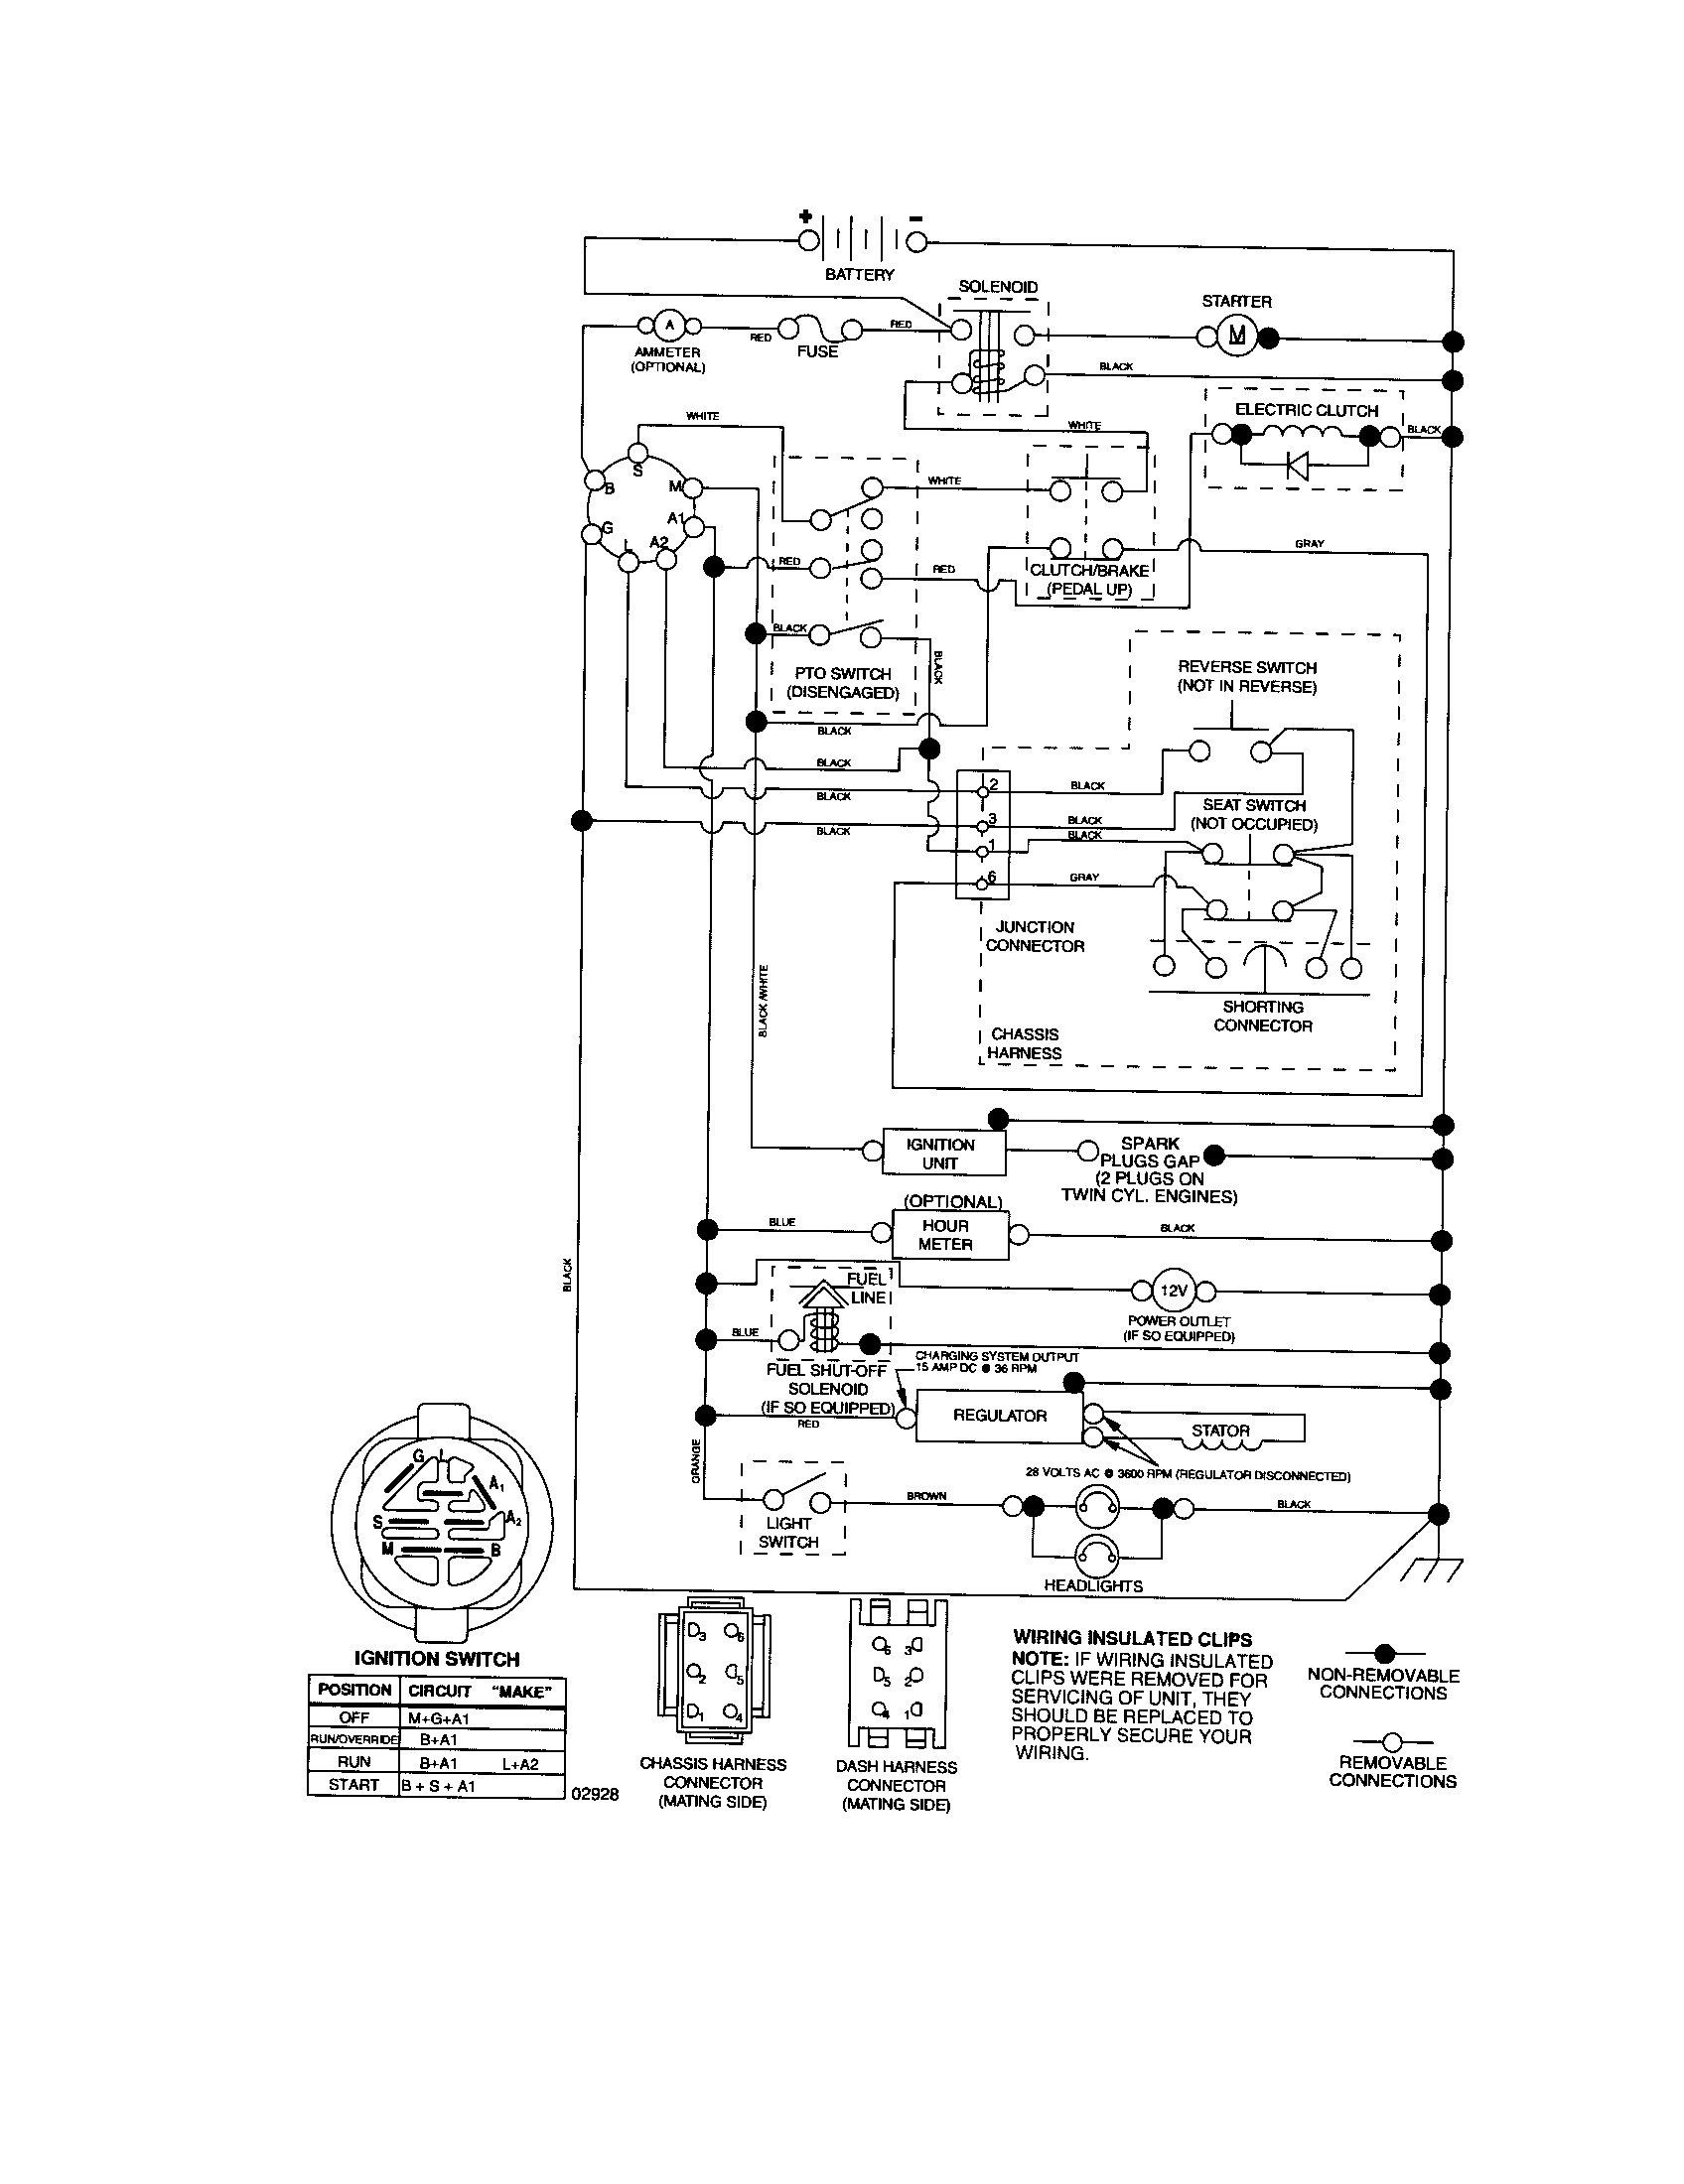 model wiring craftsman diagram tractor 917272674 wiring diagrams rear wiring diagram craftsman 1000 tractor [ 1696 x 2200 Pixel ]